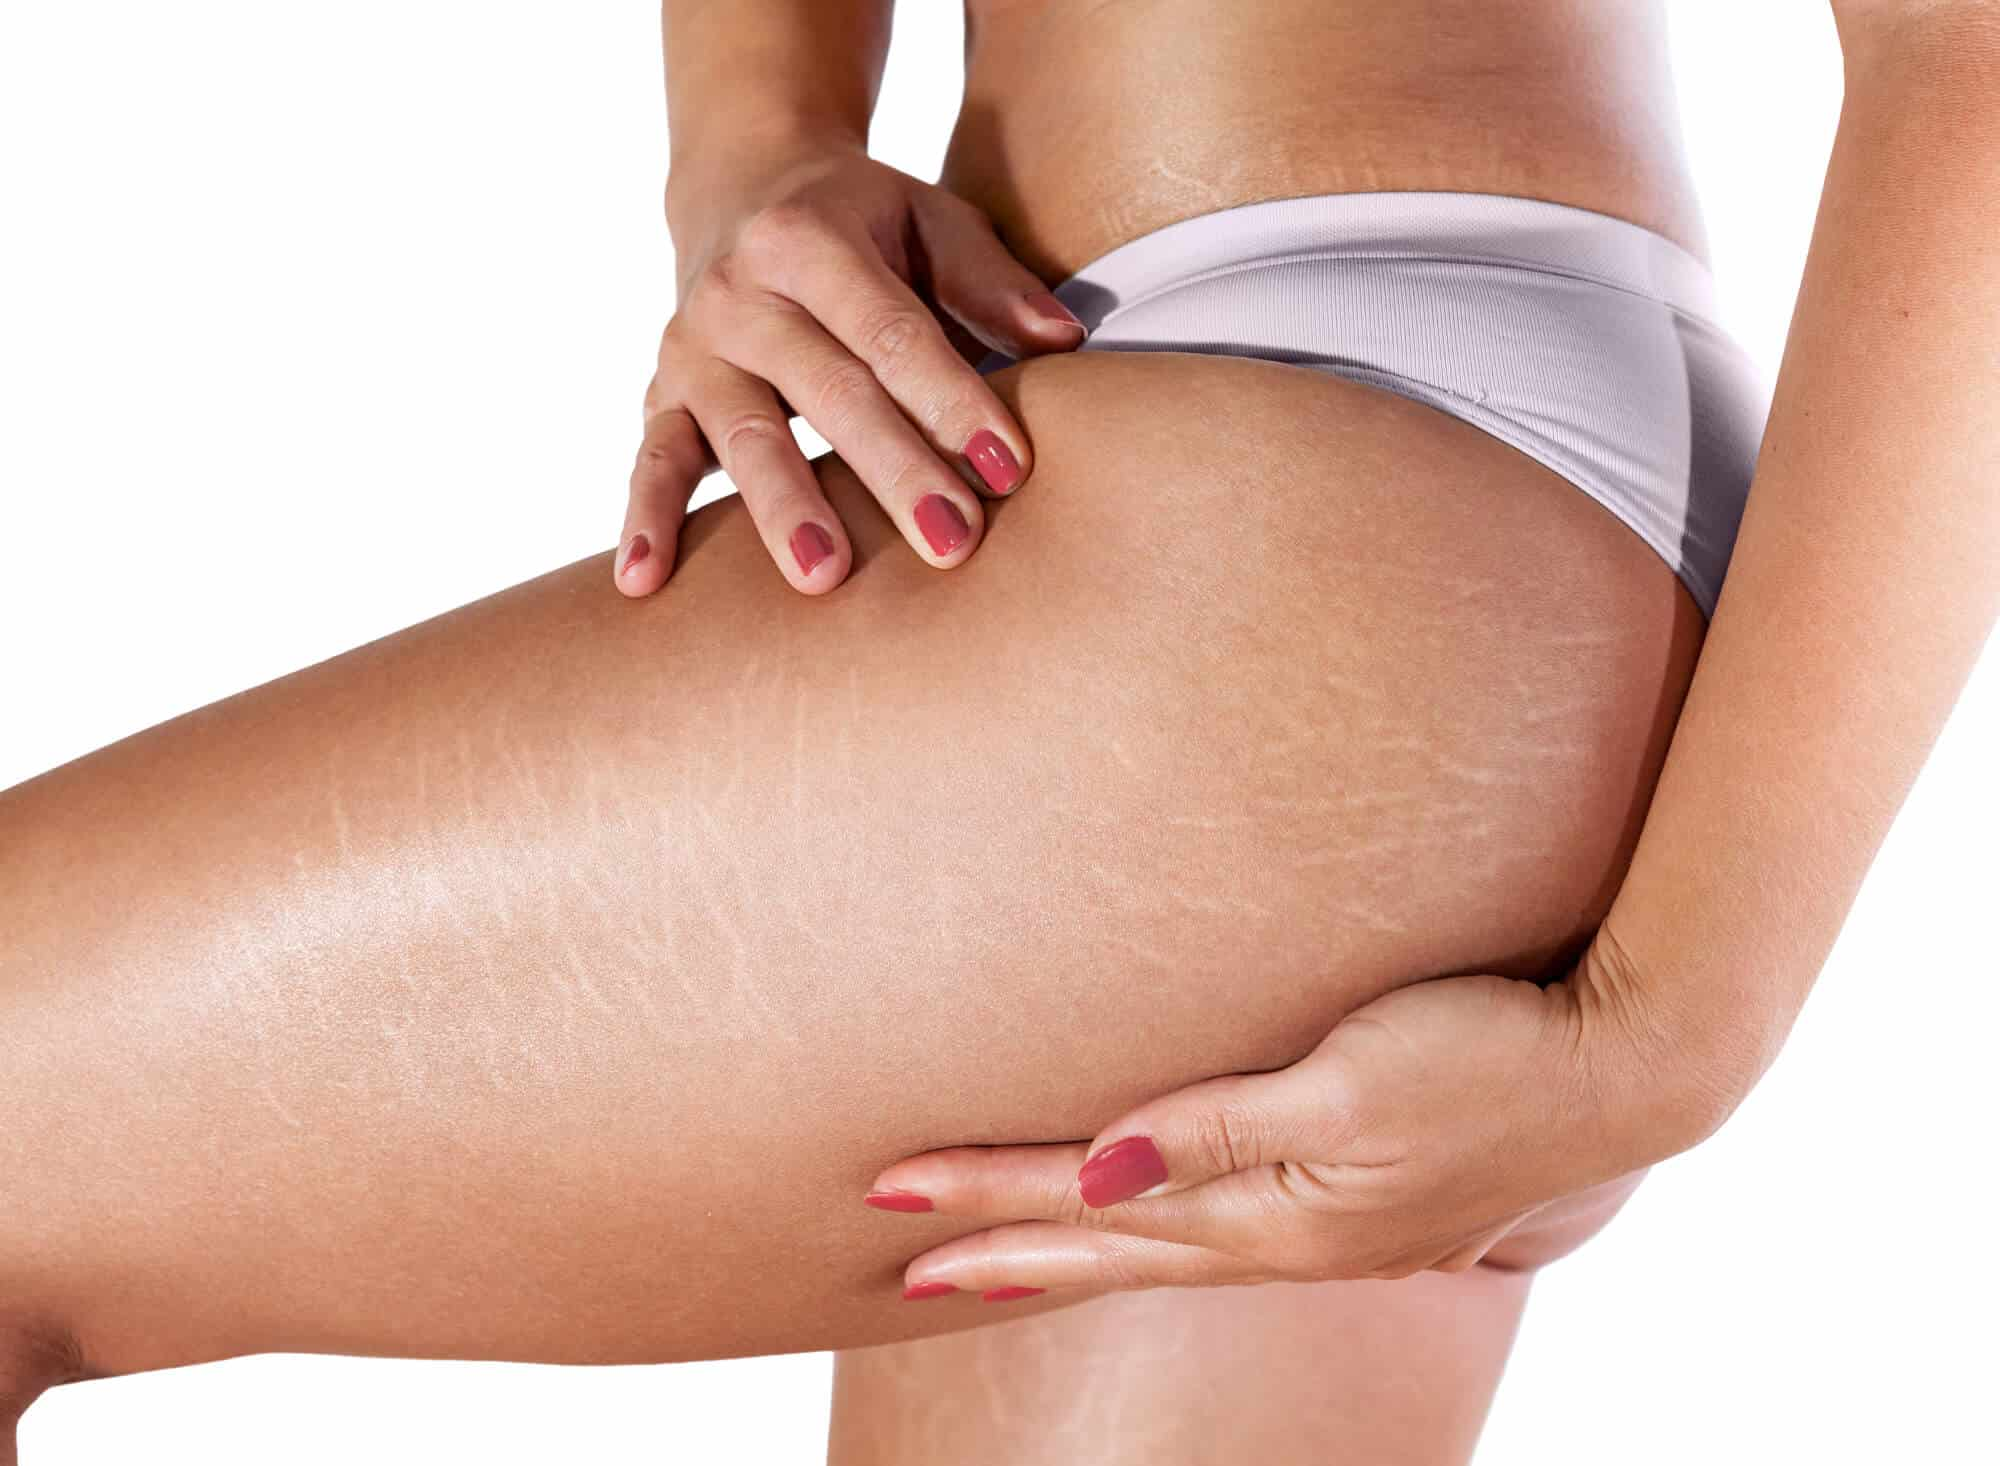 30% Off Voucher Code Stretch Marks